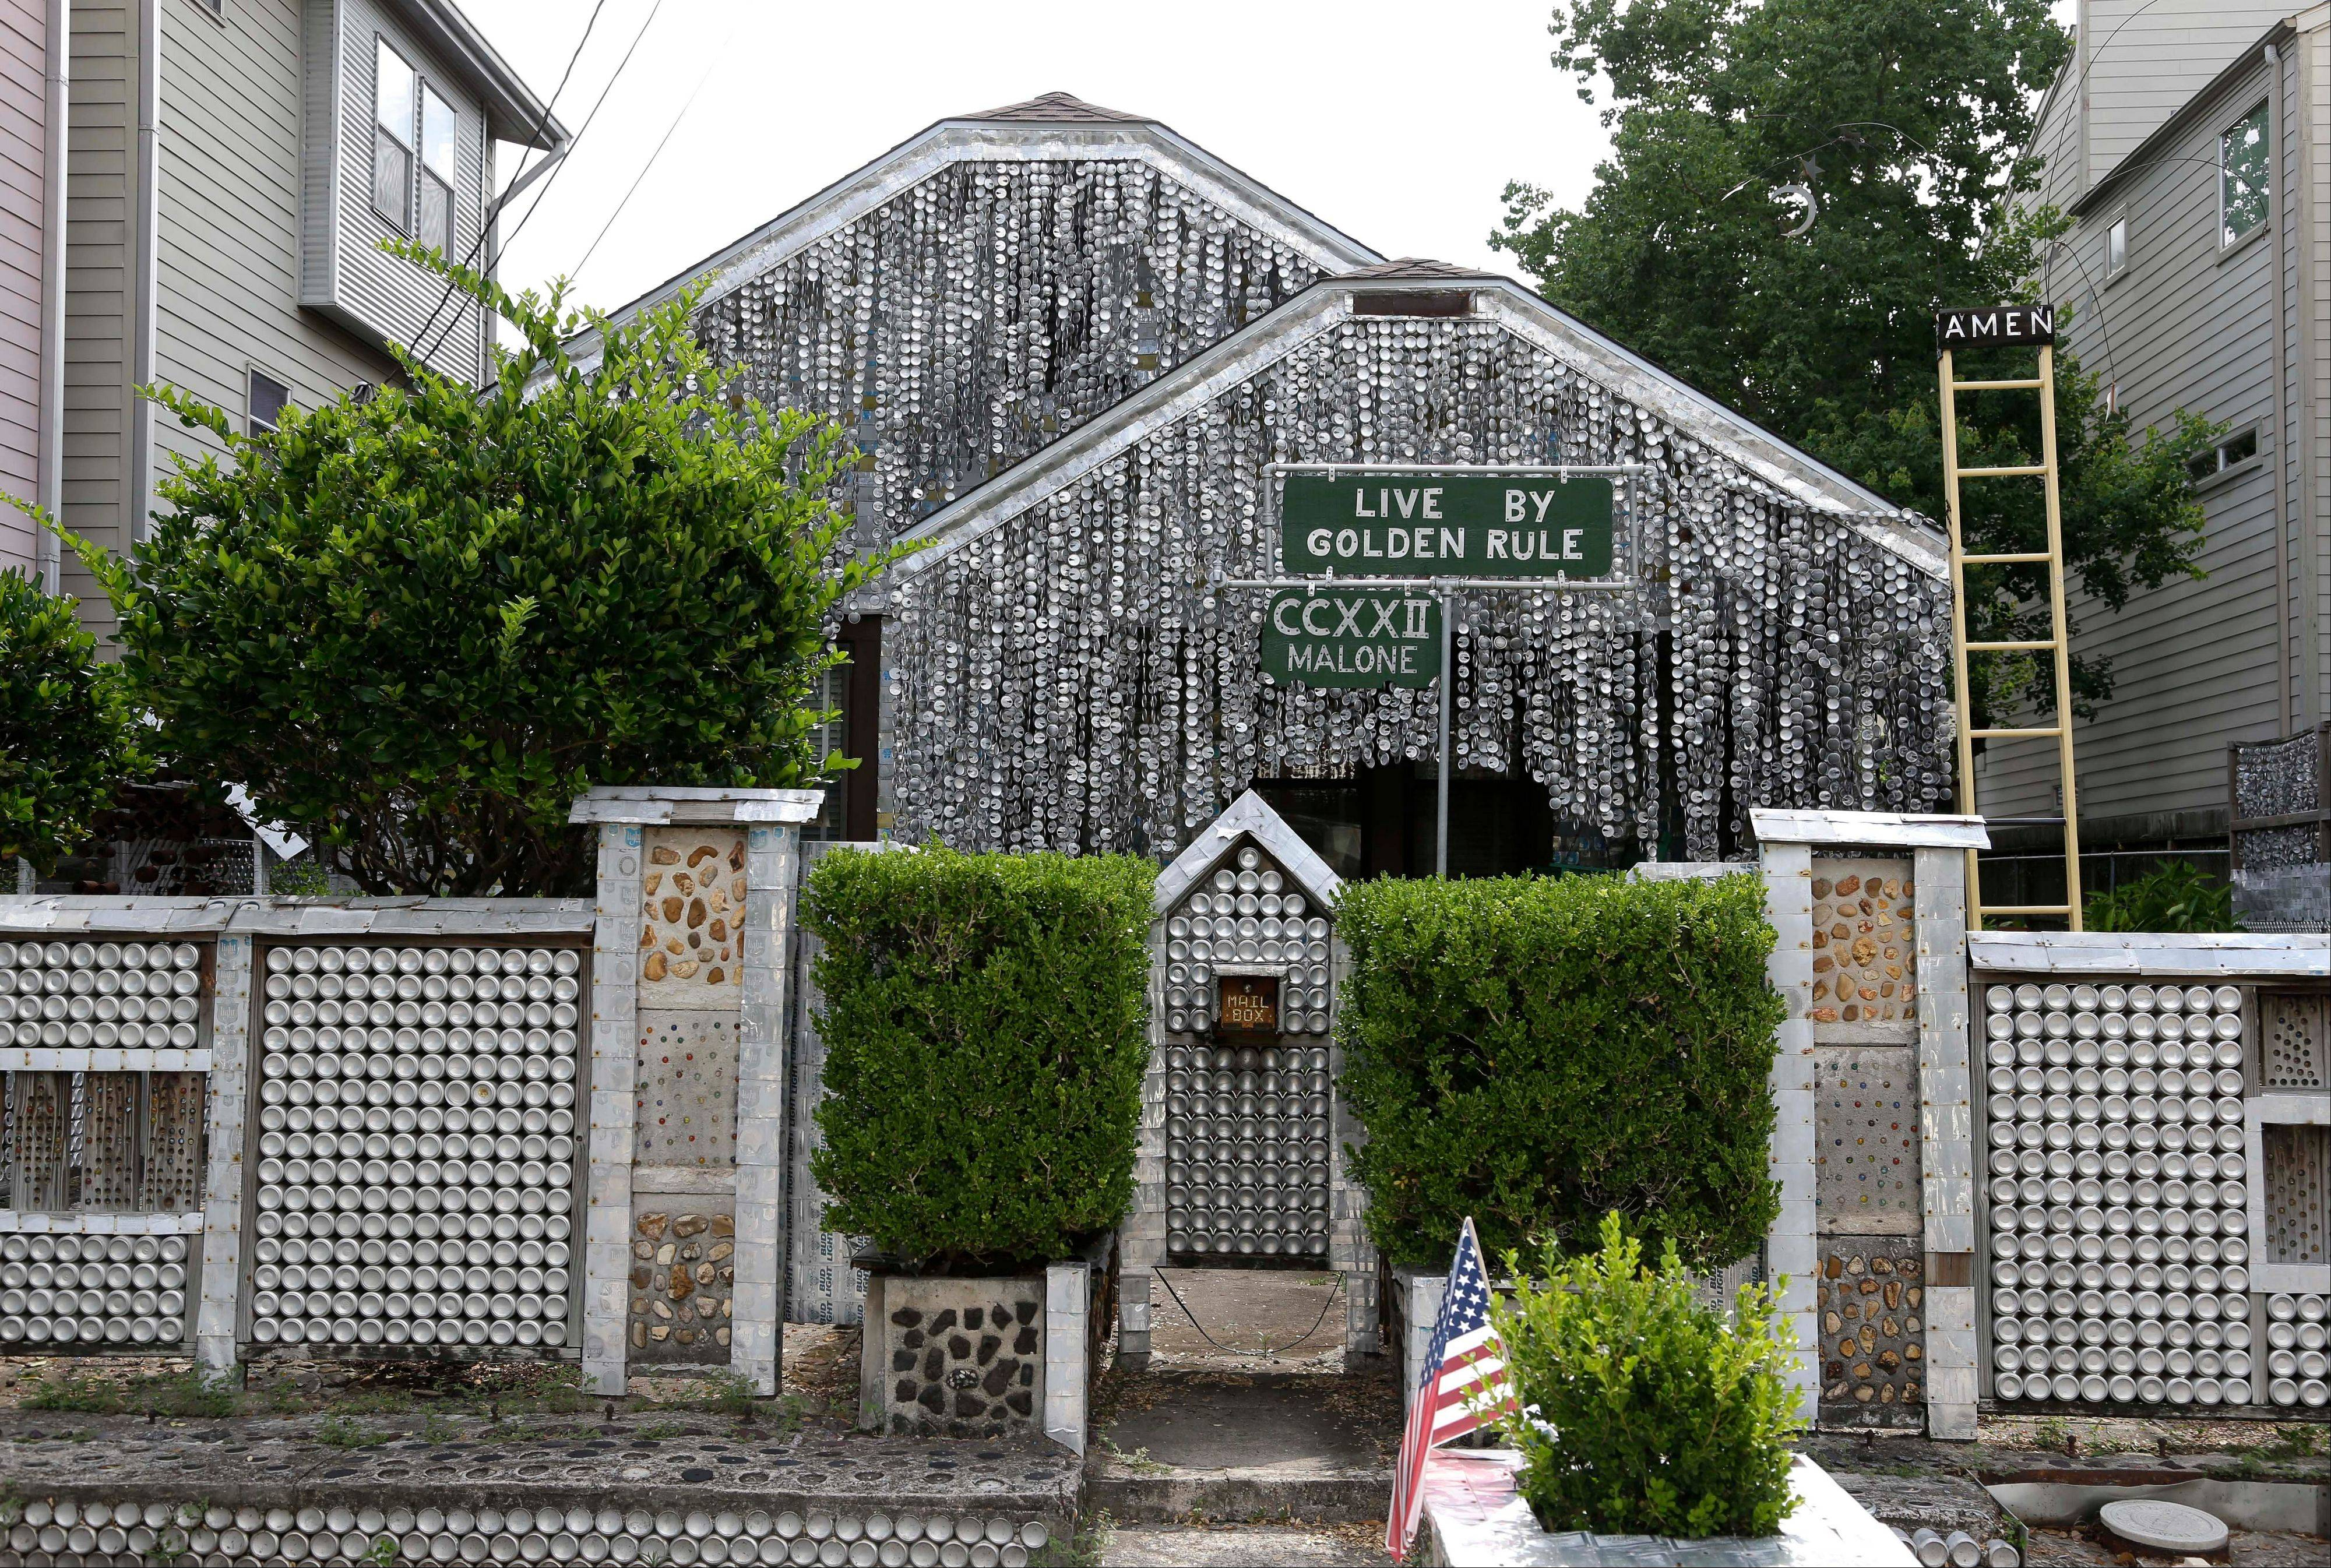 The beer can house, a Houston landmark, sits between newer homes. Former owner John Milkovisch covered the outside on the house with siding made of cut and flatten beer cans and garlands made from the lids.